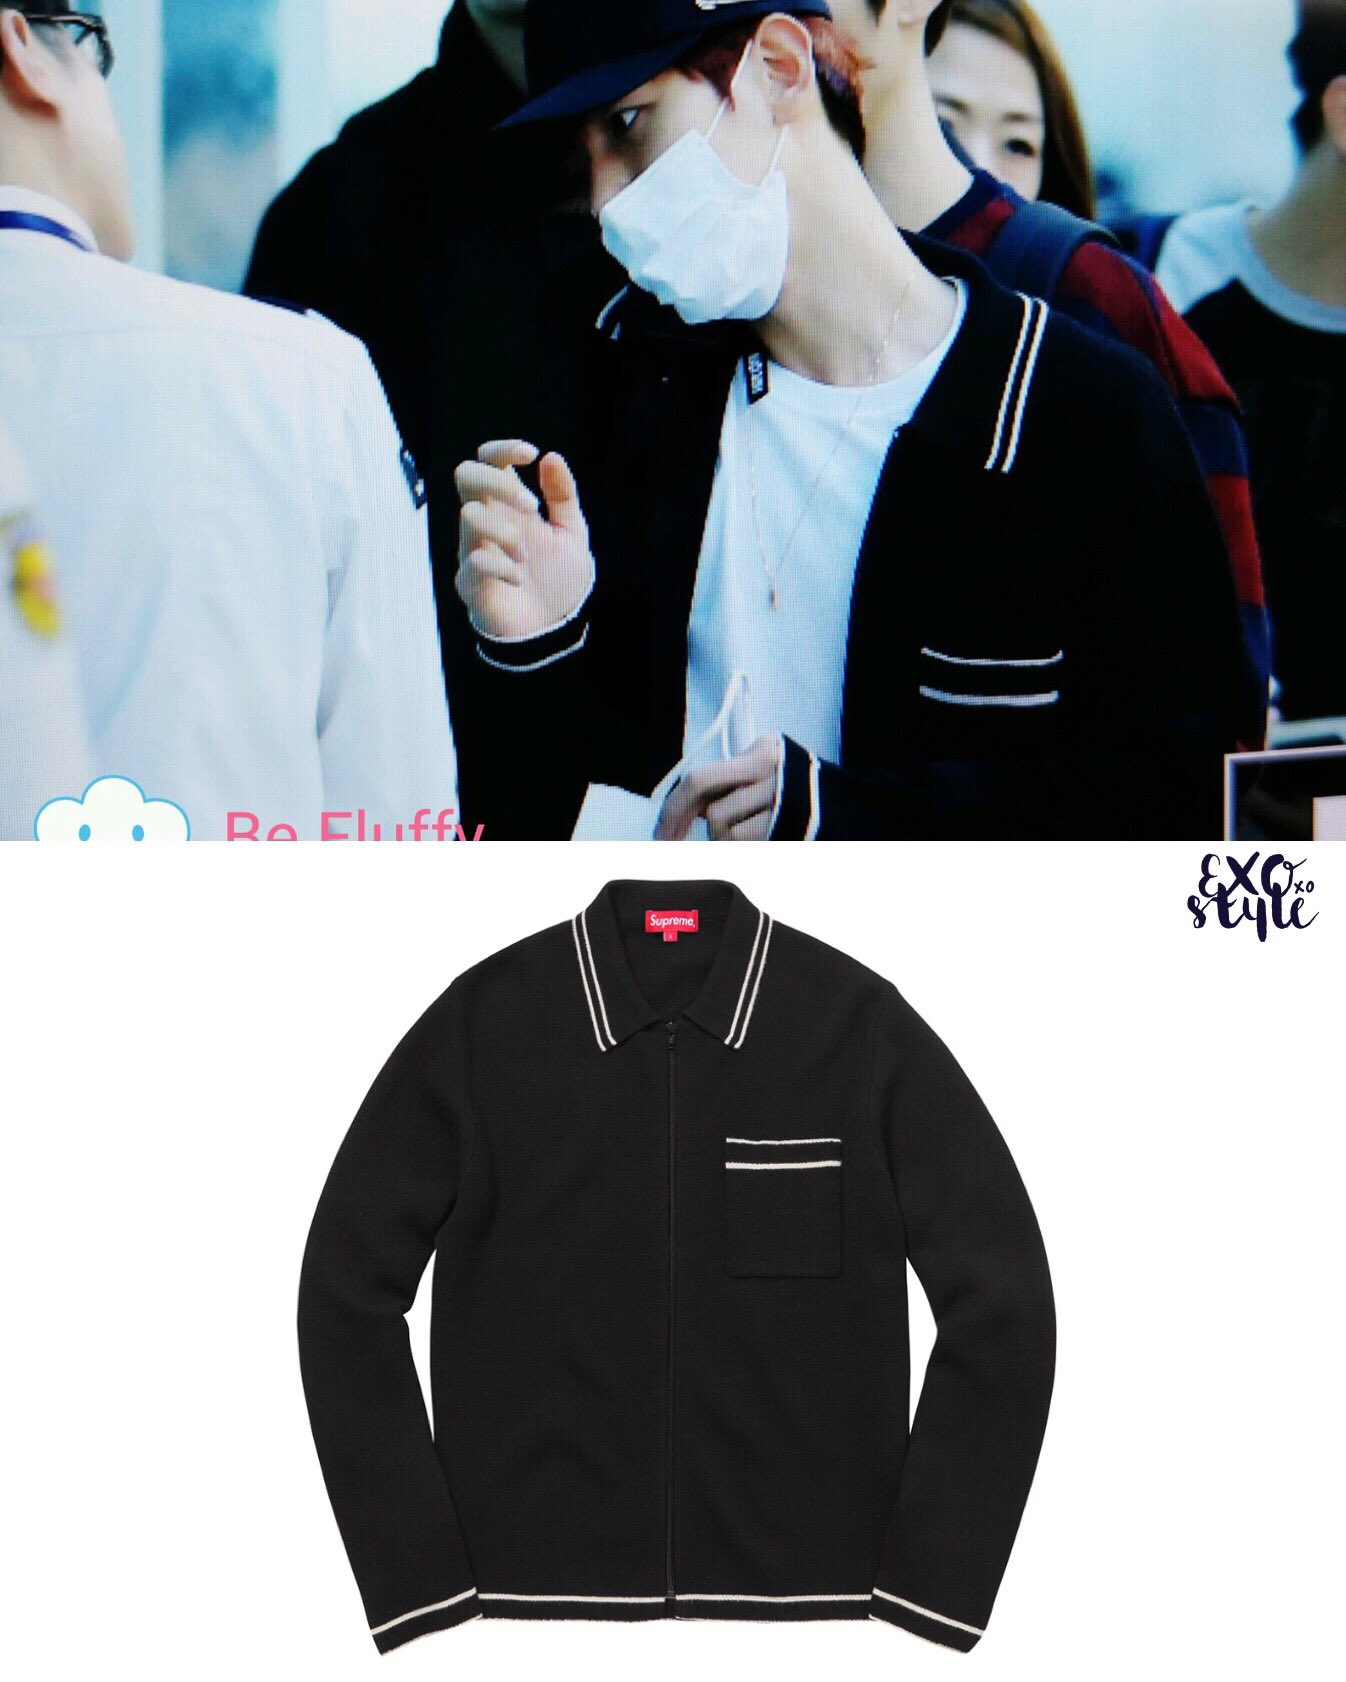 Aliexpress Zip Up Polo Sweater Supreme Ff882 137e2 Jaket Hoodie Zipper Promo Code Exoxostyle On Twitter Airport Baekhyun In Us158 Cr Be